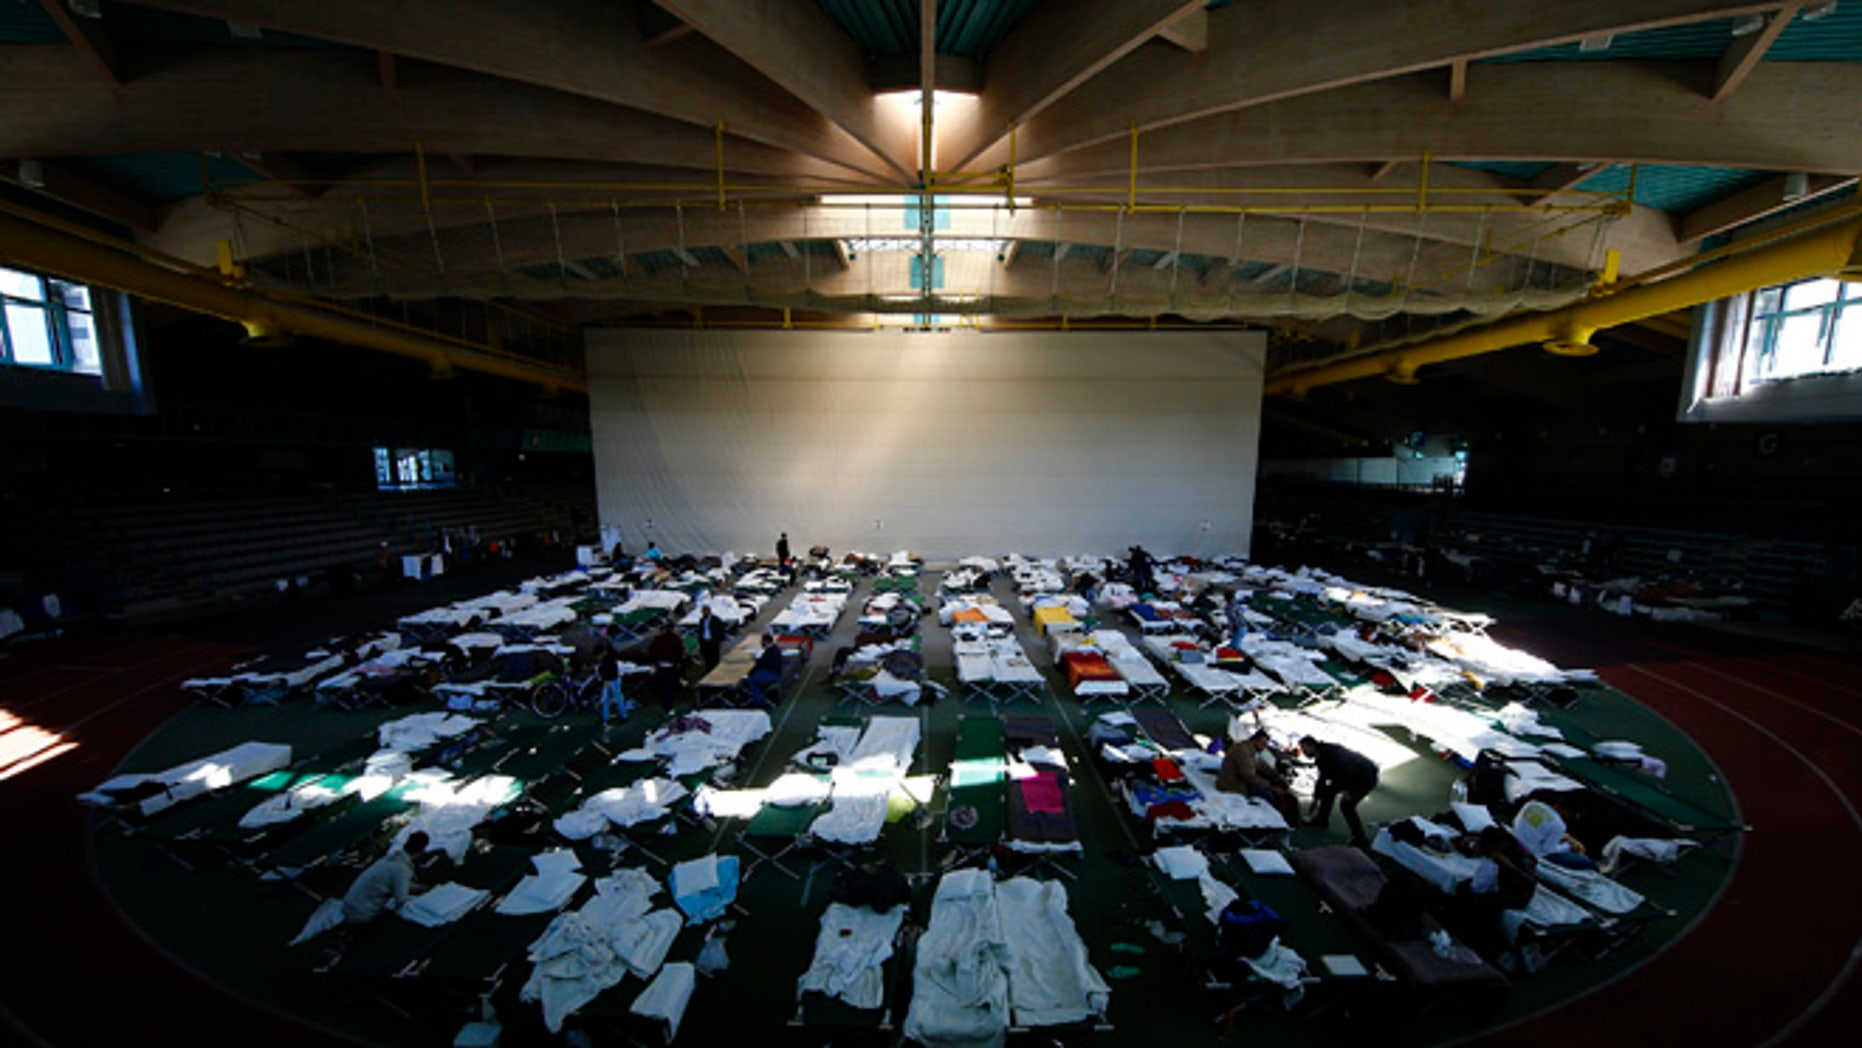 October 1, 2015: Migrants rest at a temporary shelter in a sports hall in Hanau, Germany.